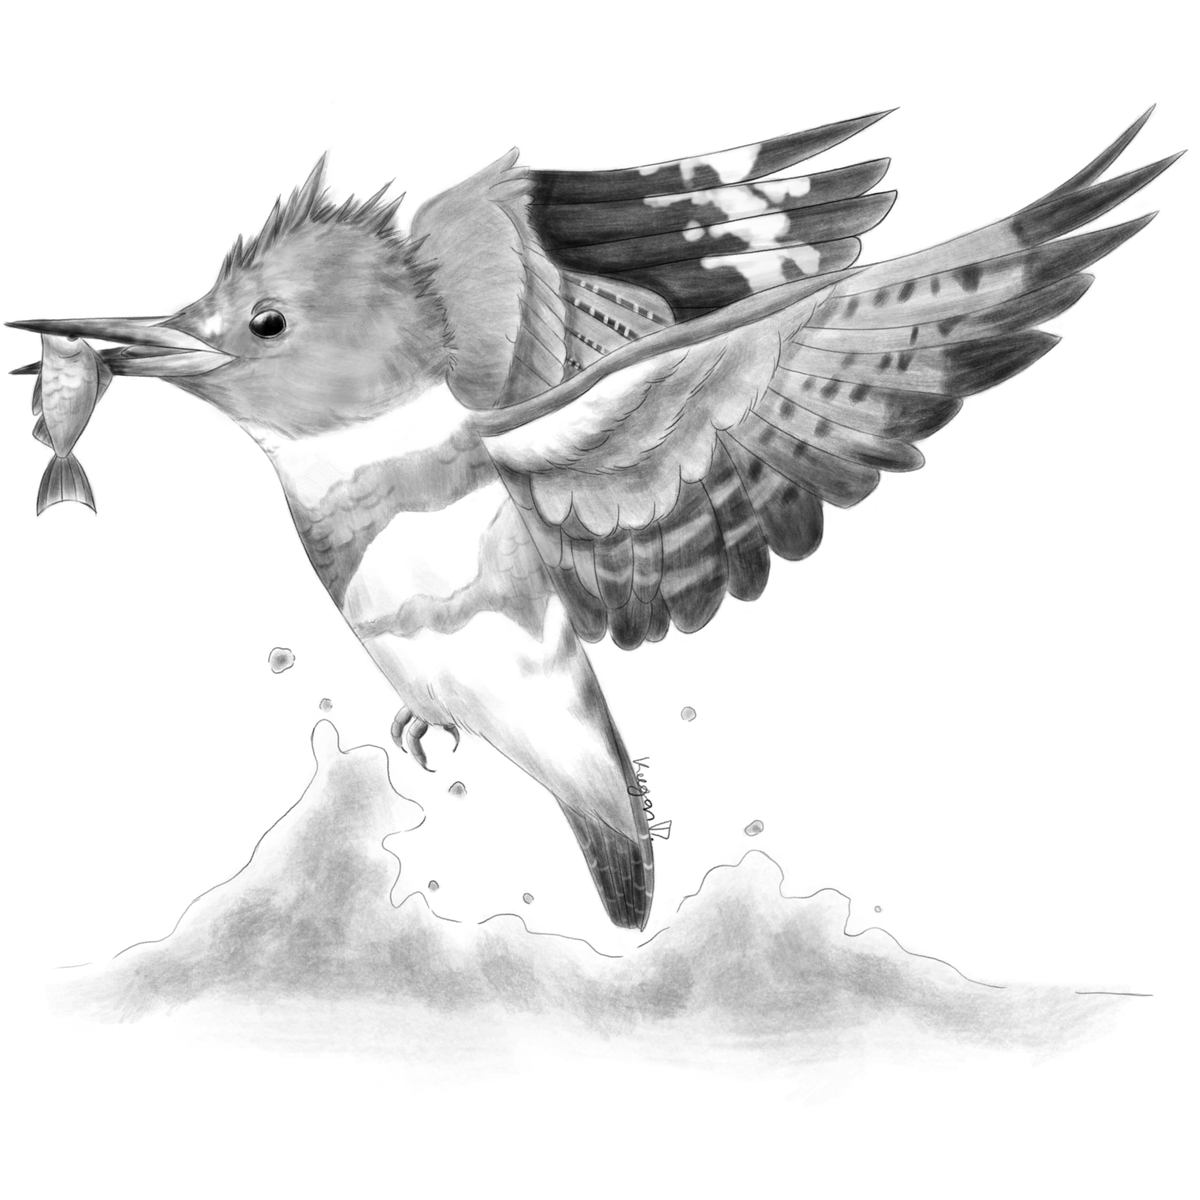 some sunday #birdart for ya! fun fact: digital graphite is a LOT less messy than the real deal! no surprise that it's another Belted Kingfisher lol https://t.co/RI0qjsyolG